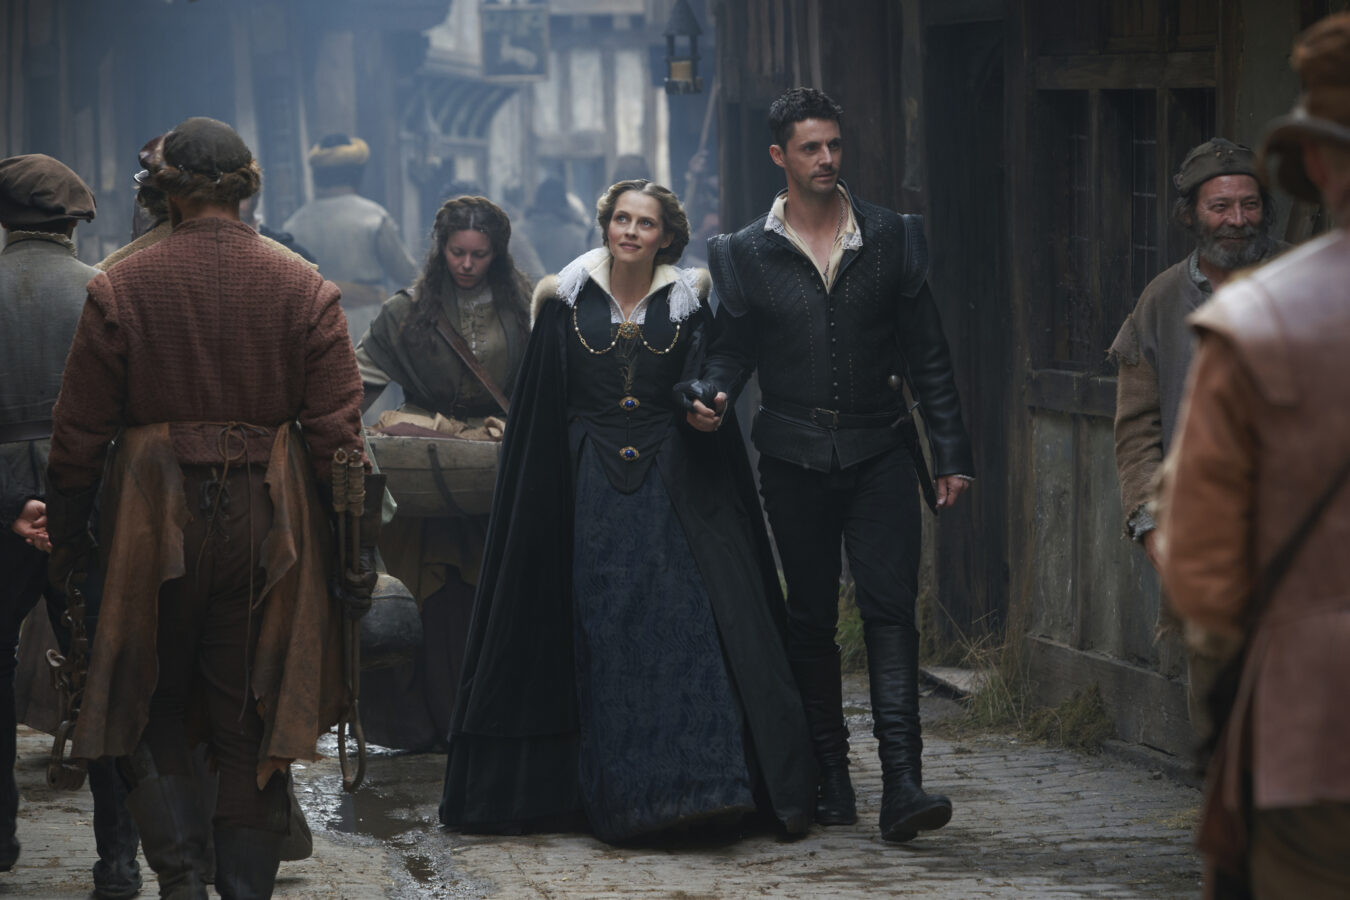 Diana and Matthew walk around Elizabethan England in A Discovery of Witches season 2 premiere episode